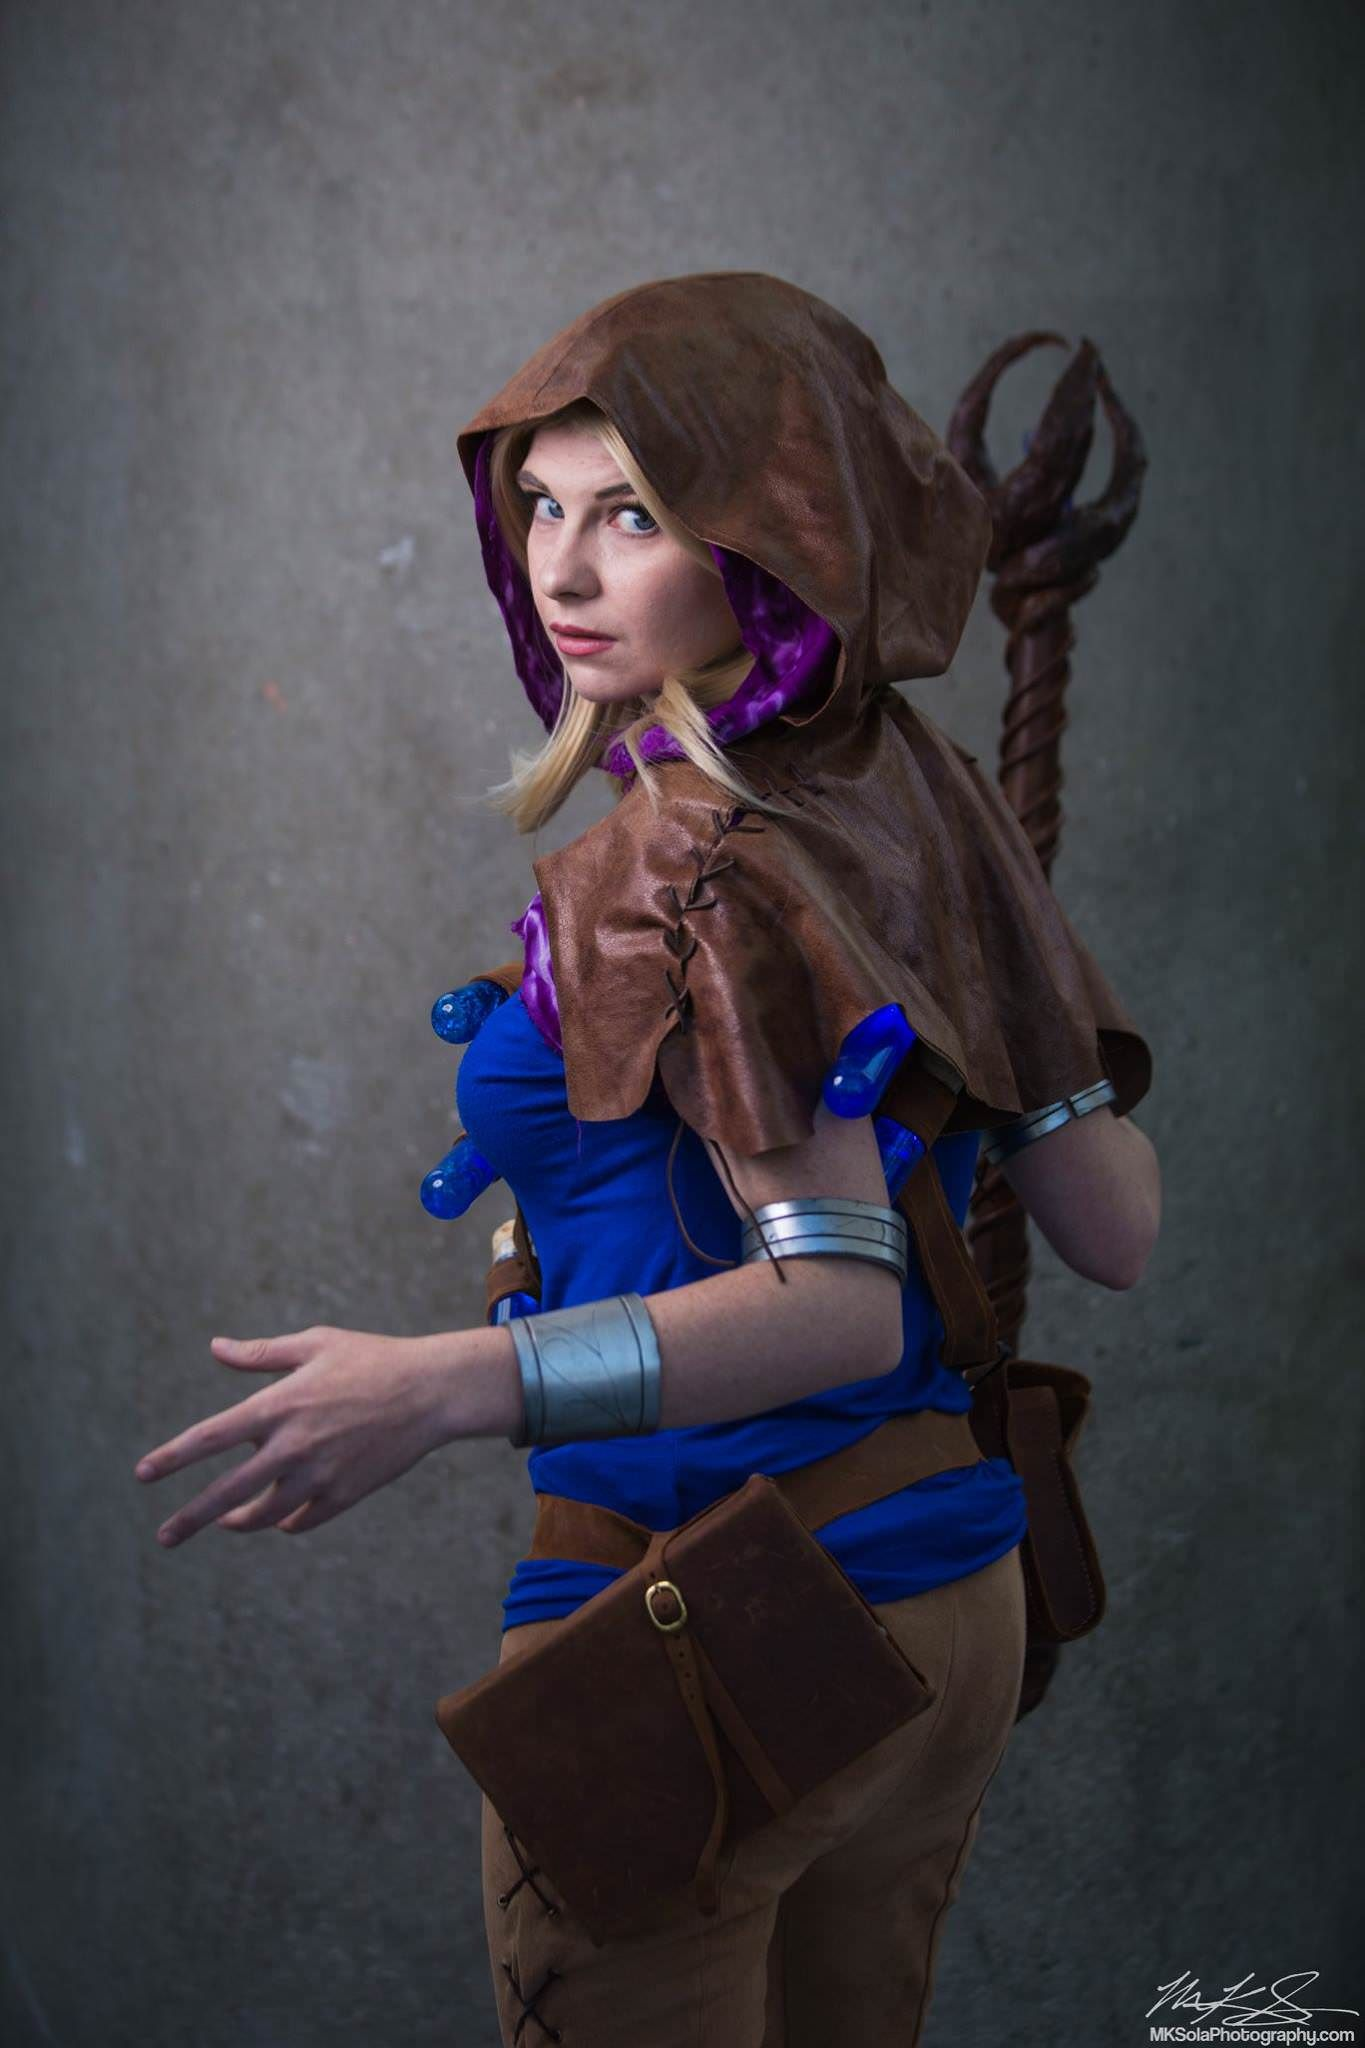 Spellthief Lux Cosplay Spellthief Lux Cosplay Video Games Cosplay Costumes